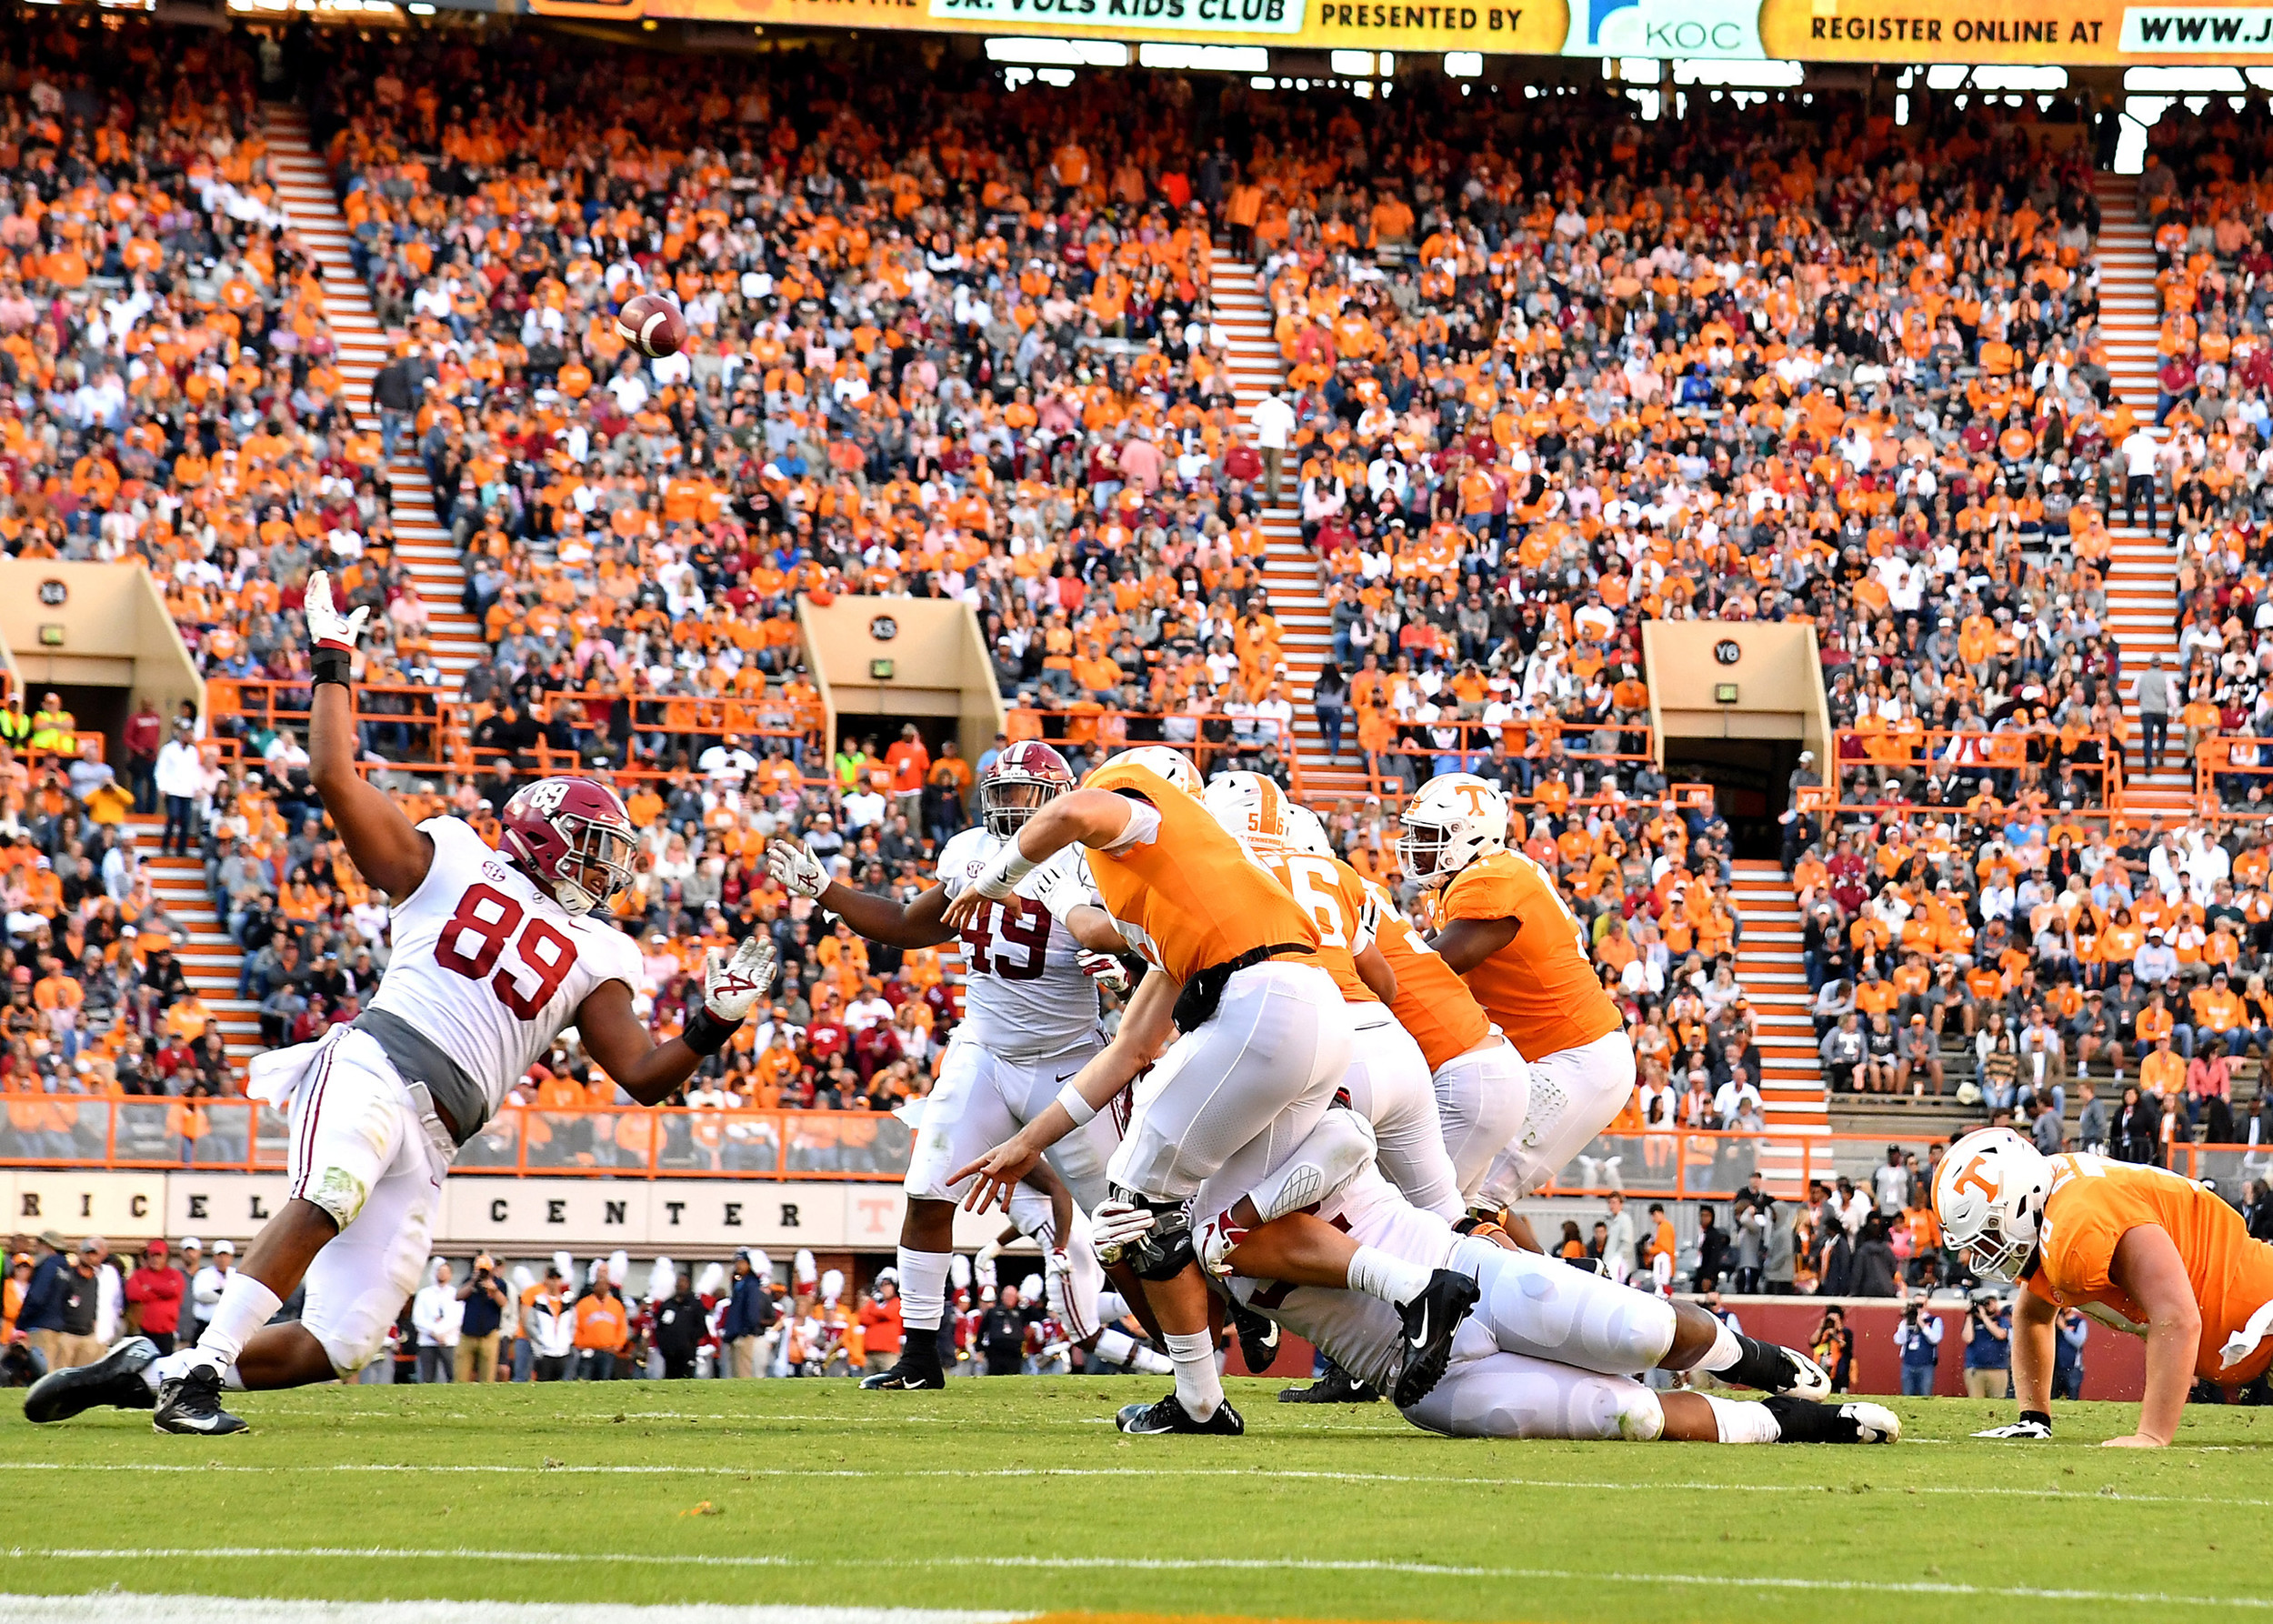 Tennessee Volunteers backup quarterback Keller Chryst (19) is seen under pressure in the first half of the Alabama at Tennessee NCAA football game on Saturday, Oct. 20, 2018, at Neyland Stadium in Knoxville. Tenn. Alabama wins 58-21. (Photo by Lee Walls)